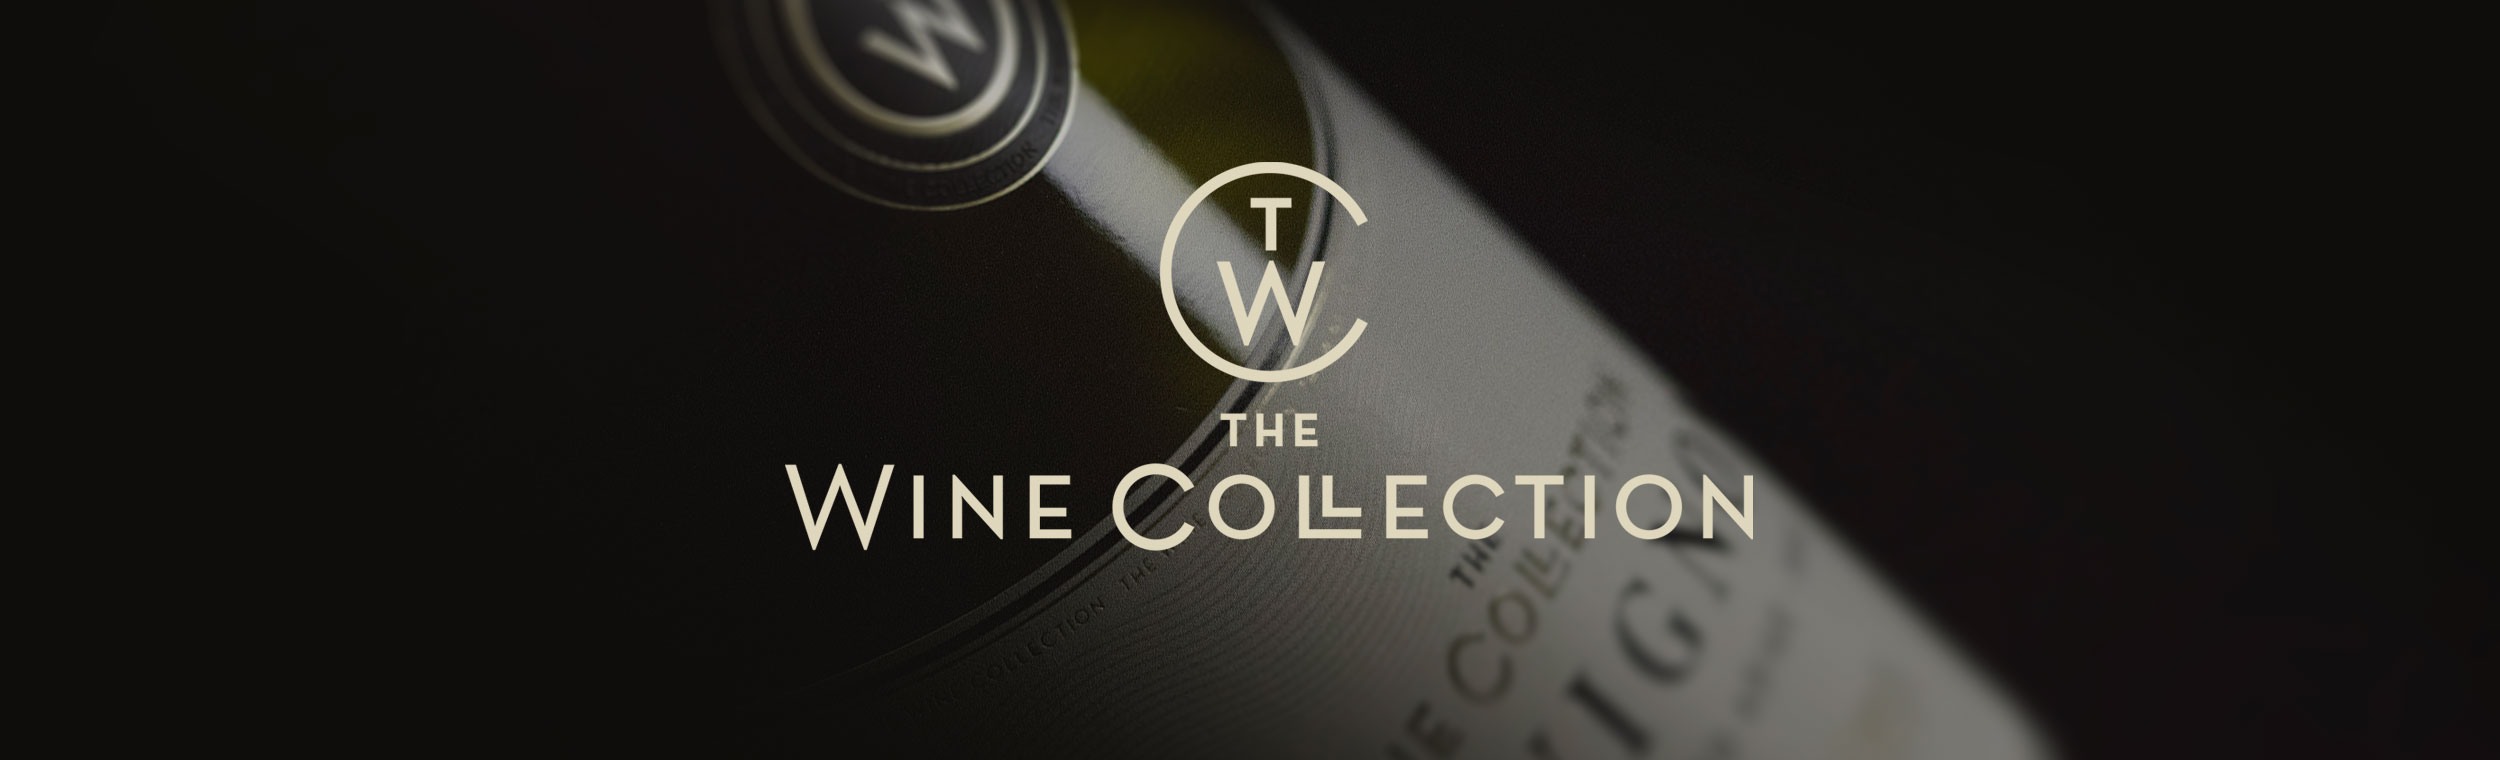 TWC The Wine Collection